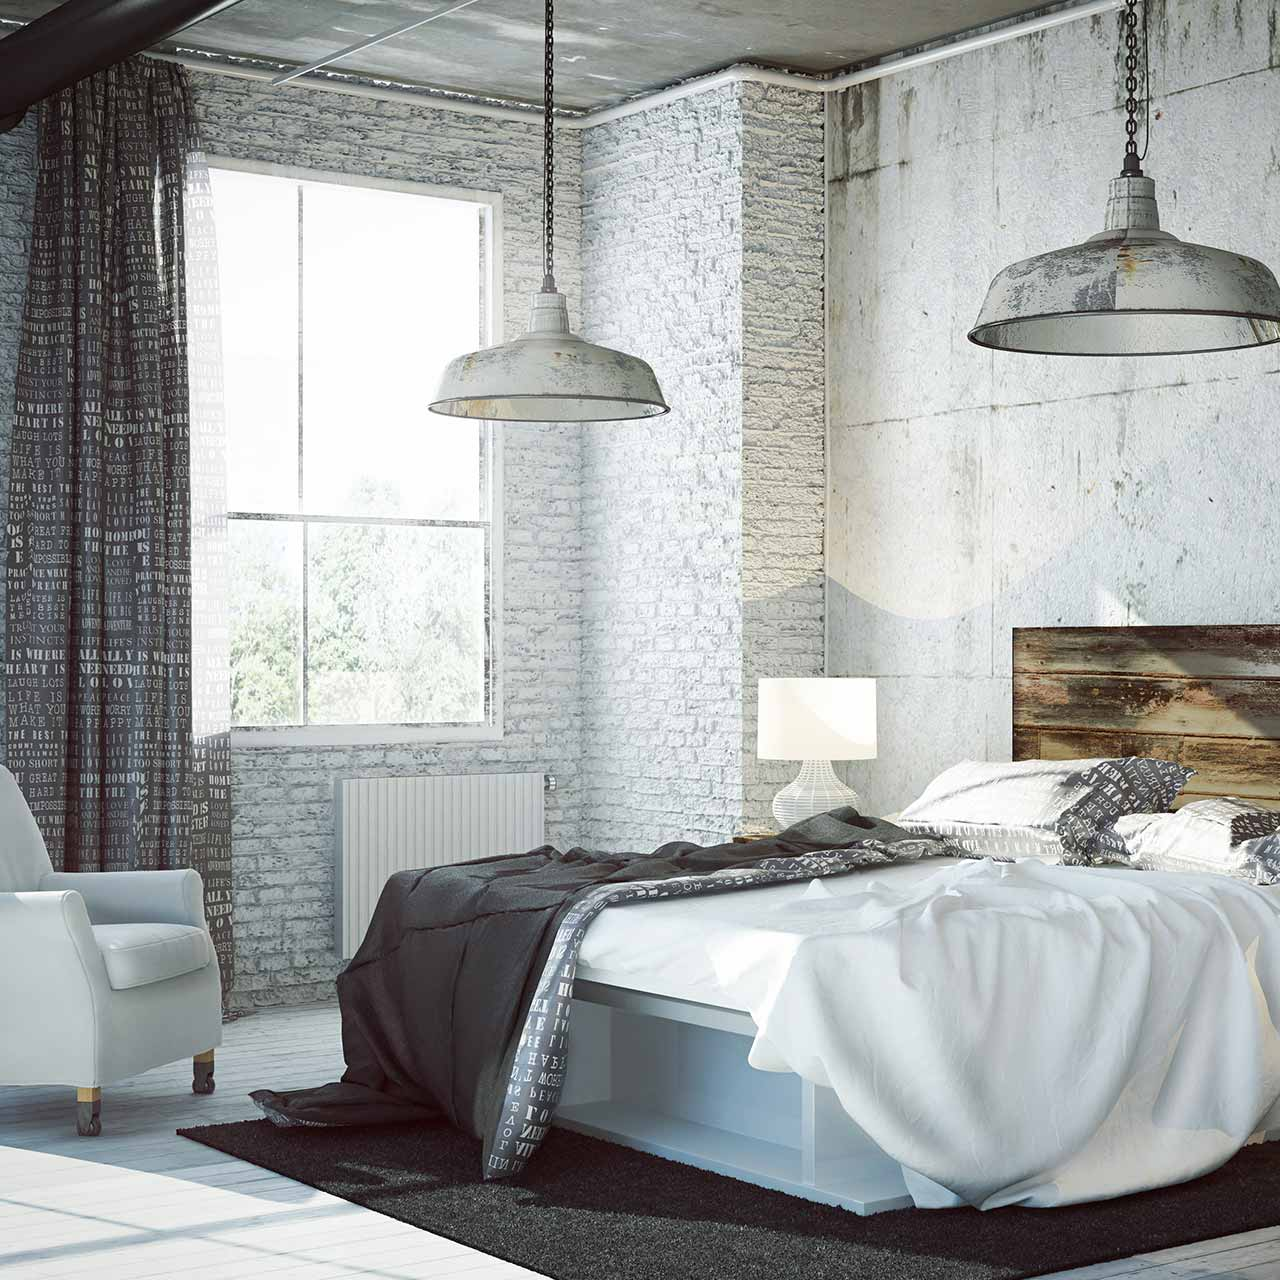 Simplicity adorns the uniqueness for industrial style bedroom design